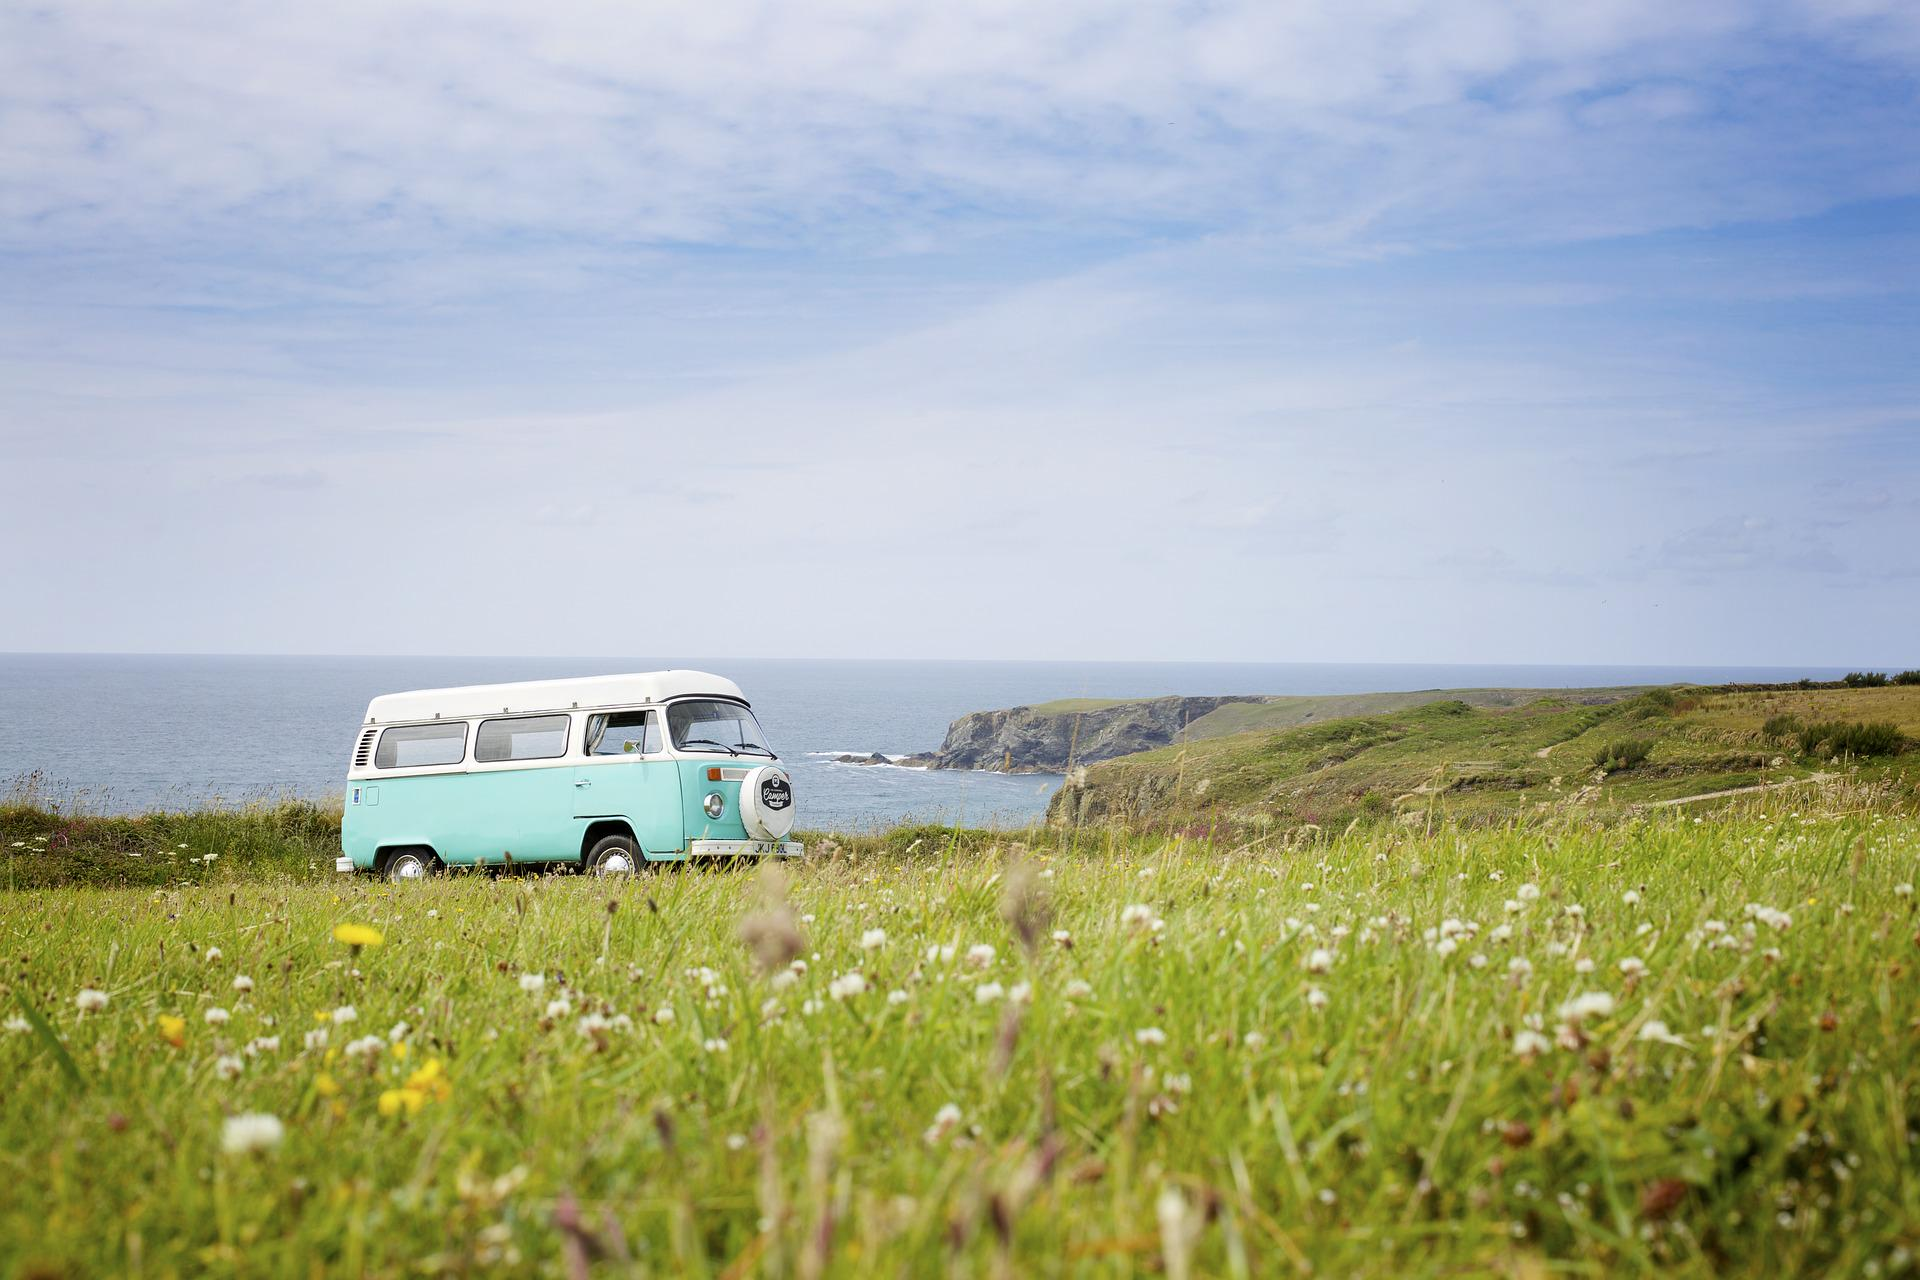 Campervan Hire in the UK and France, Spain, Italy - the best campervan, RV or motorhome for your campervan holiday